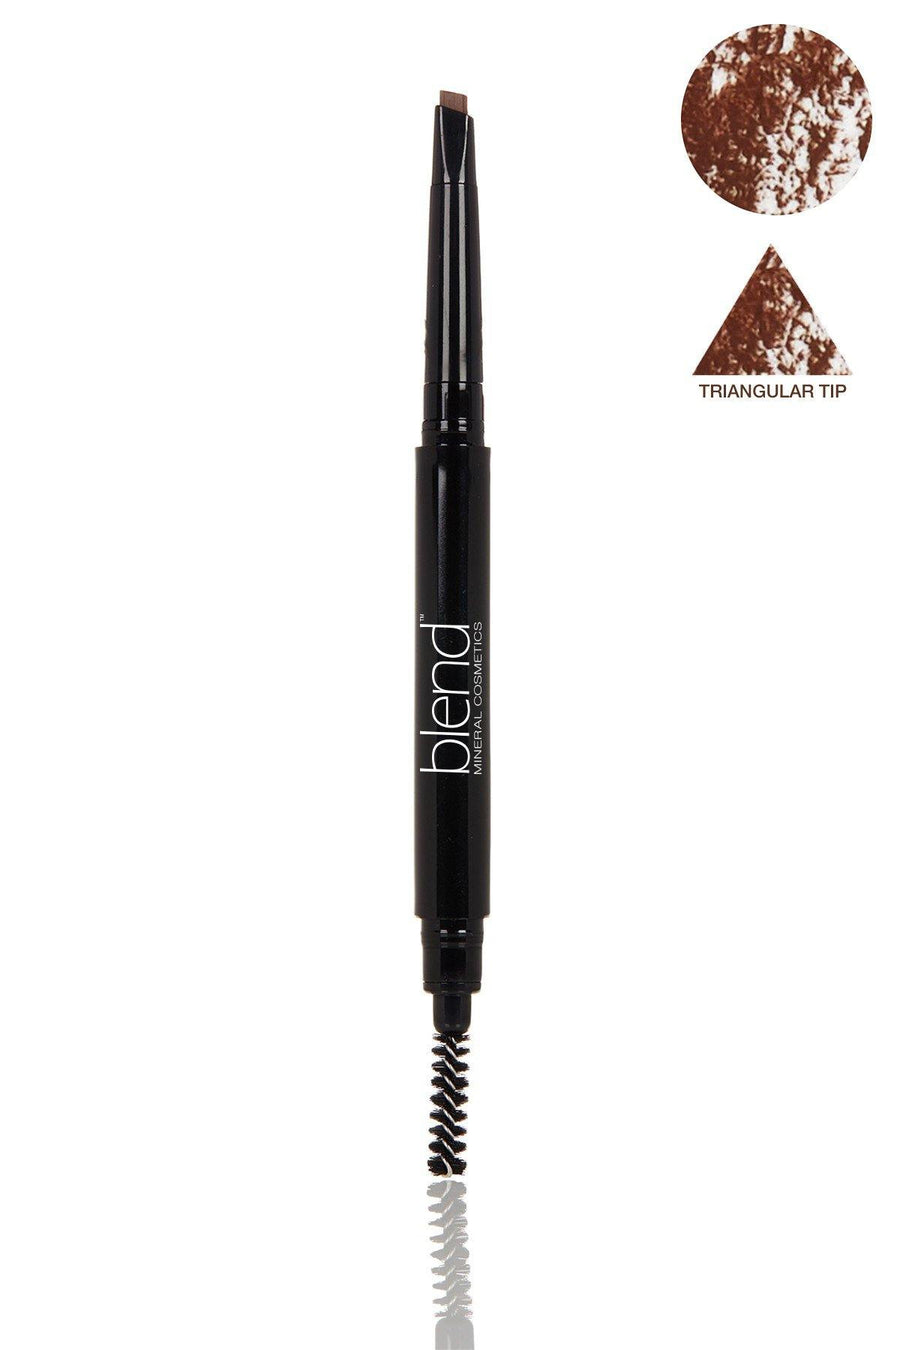 Defined Long-Wear Brow Pencil & Attached Spooly Brush - Universal Dark Warm - Blend Mineral Cosmetics